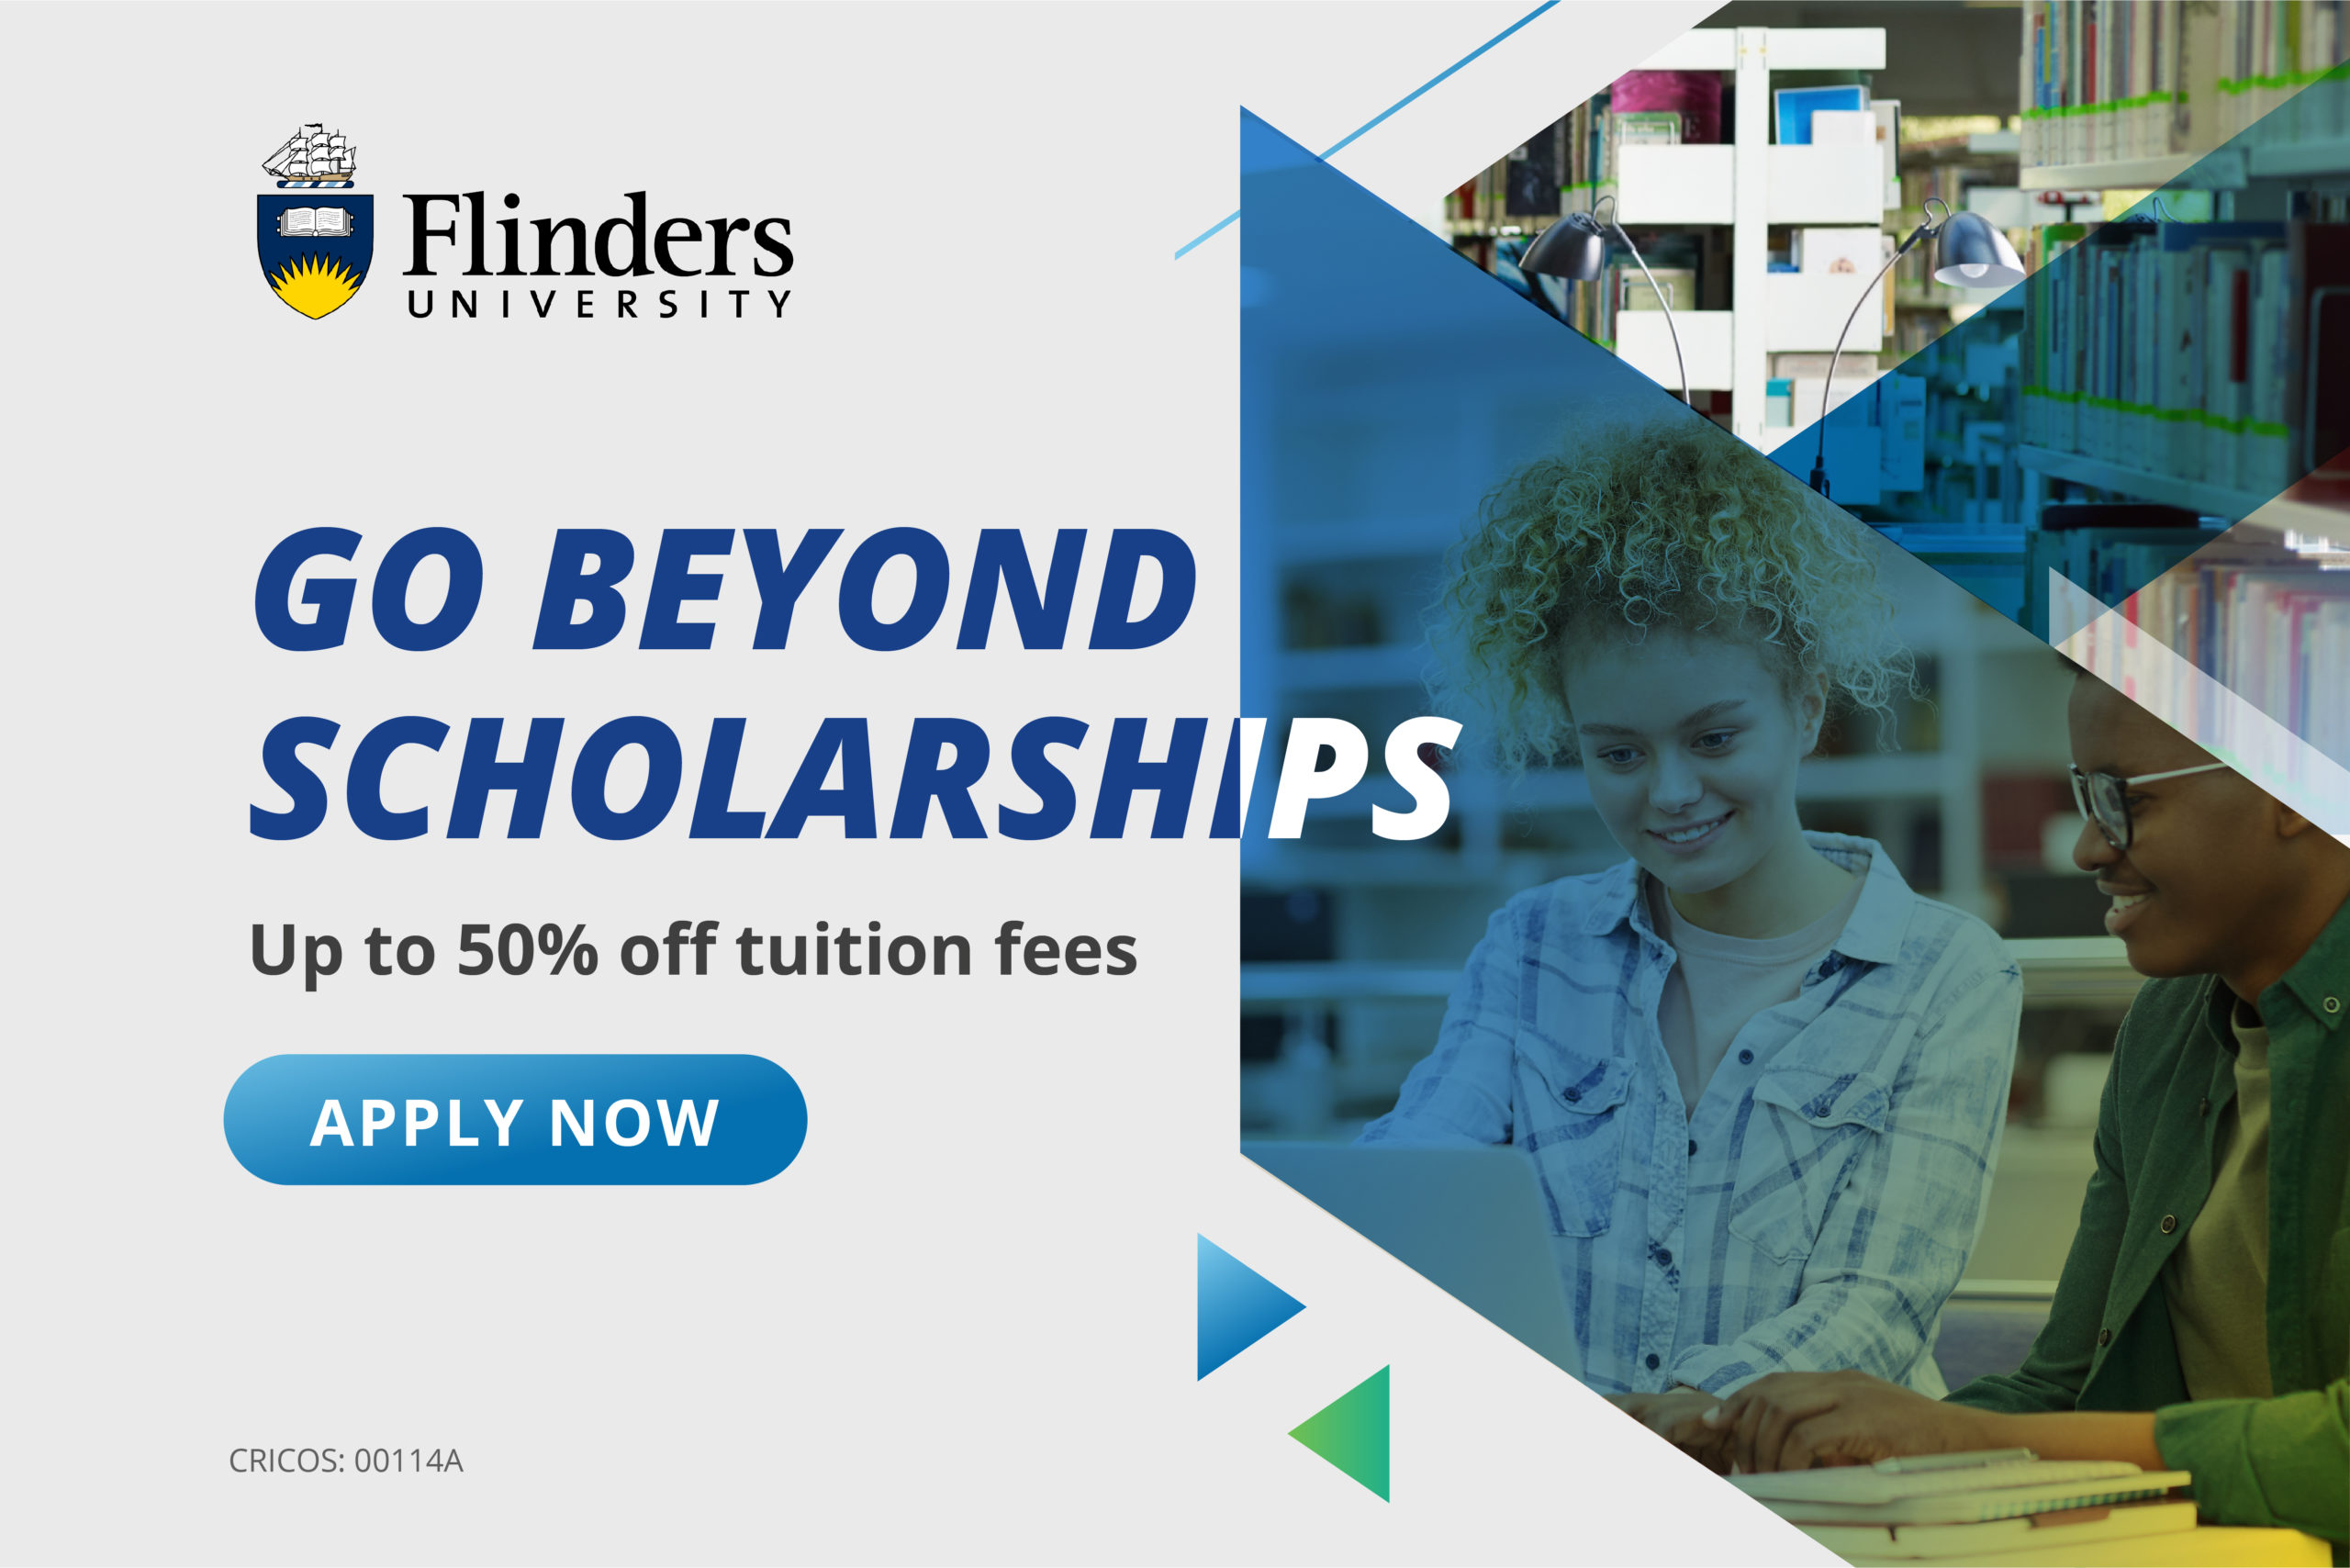 Flinders University Go Beyond Scholarships